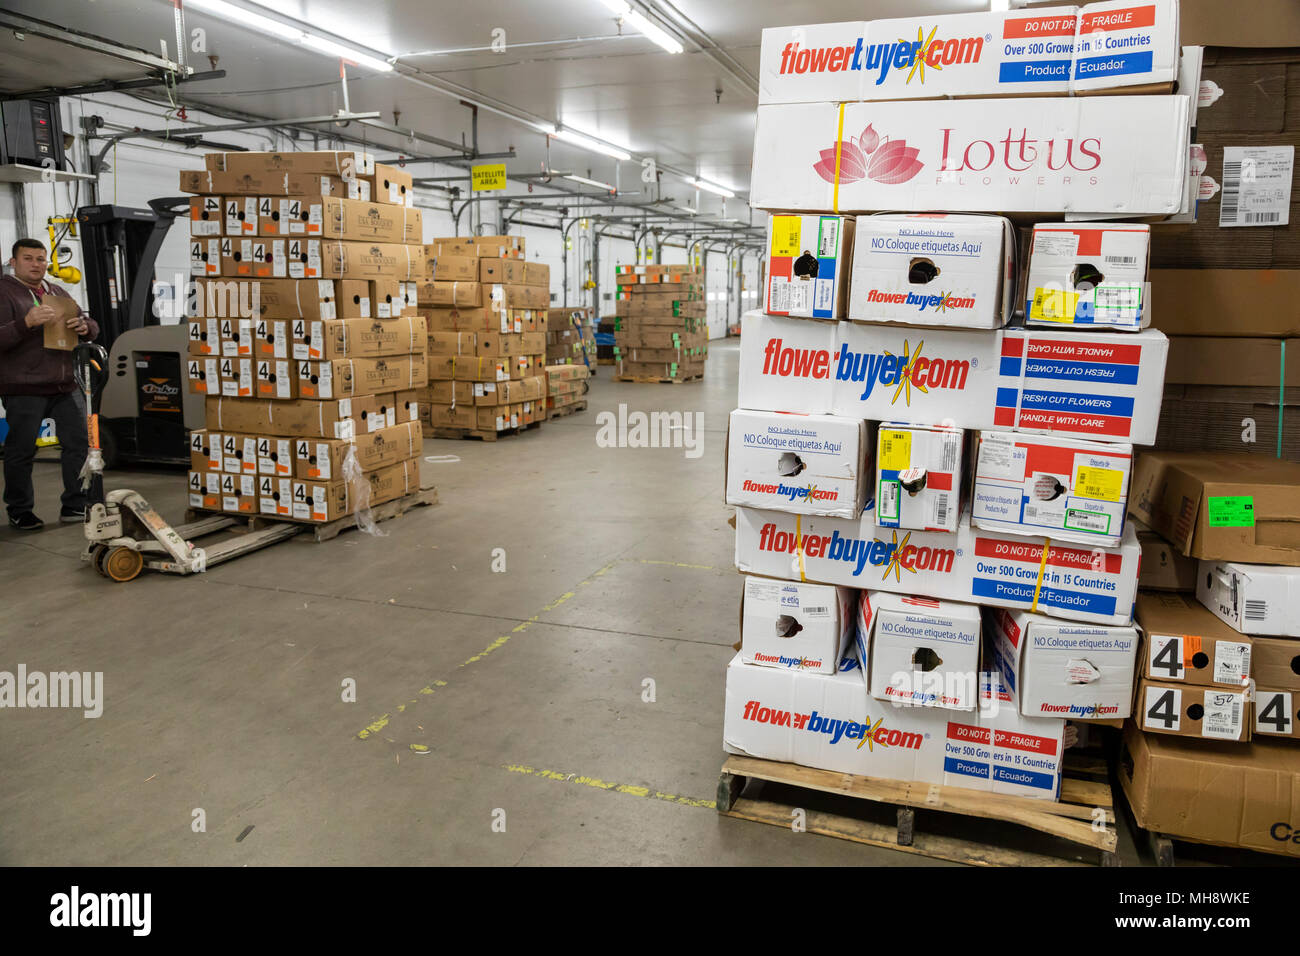 Doral, Florida - Cut flowers from Ecuador stacked in the warehouse at the USA Bouquet company near the Miami airport. Workers at the company package f - Stock Image